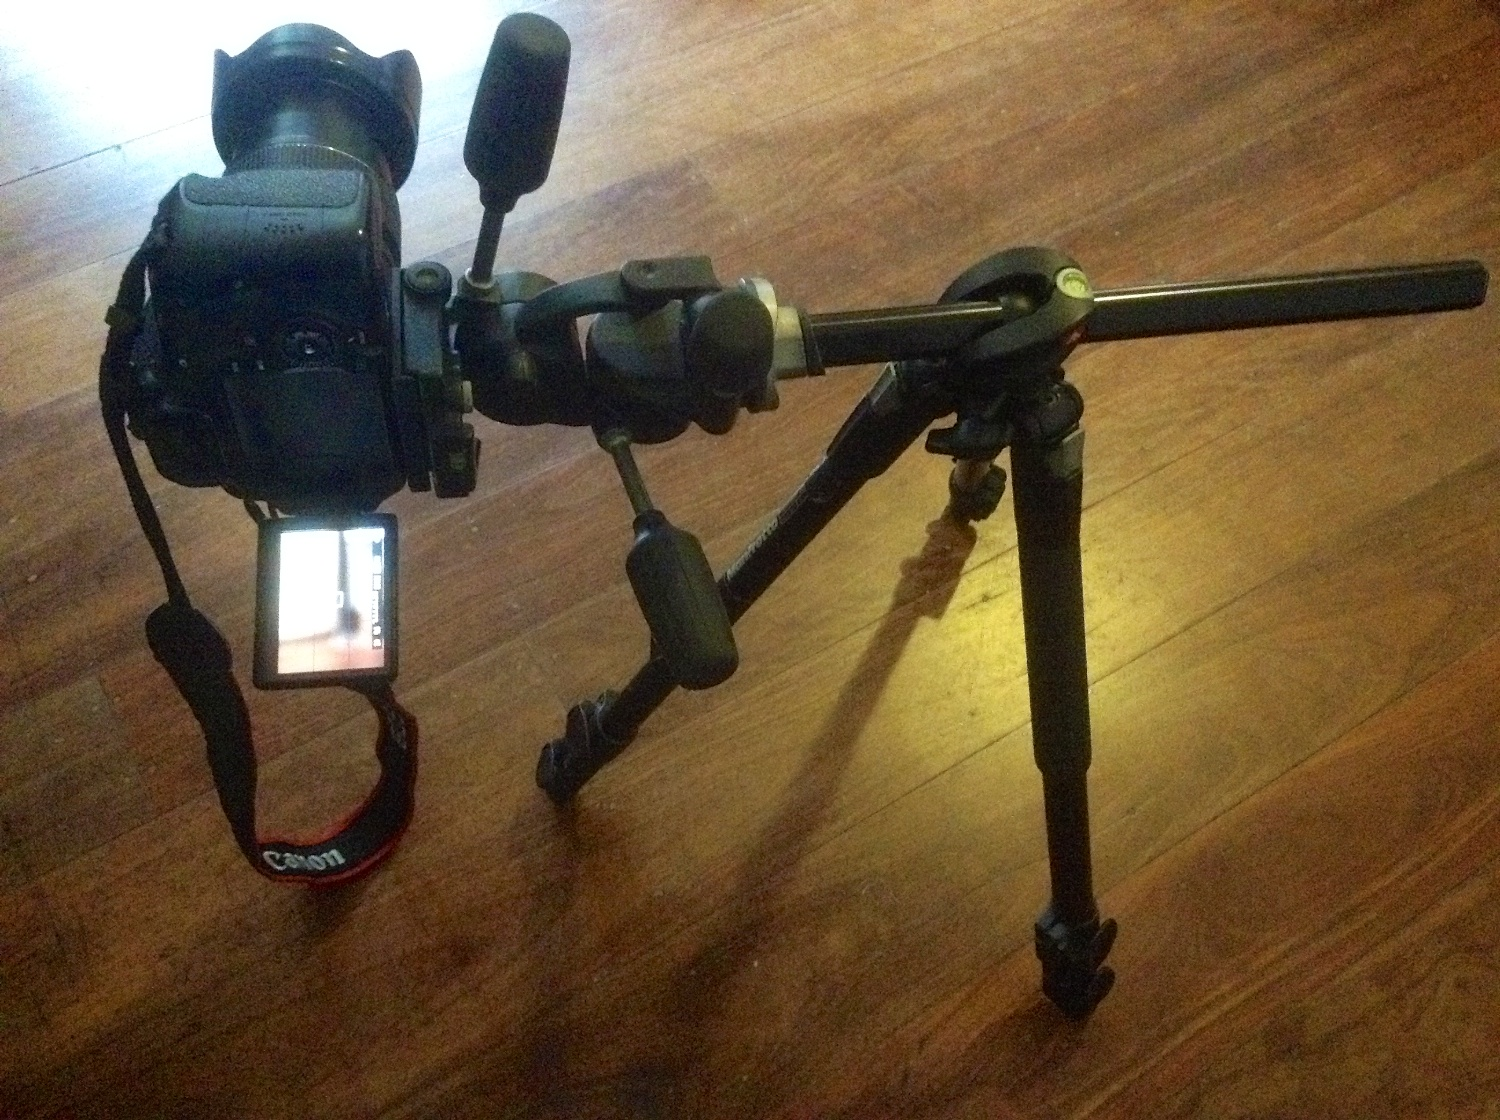 Manfrotto 190XPROB legs with horizontal centre column.